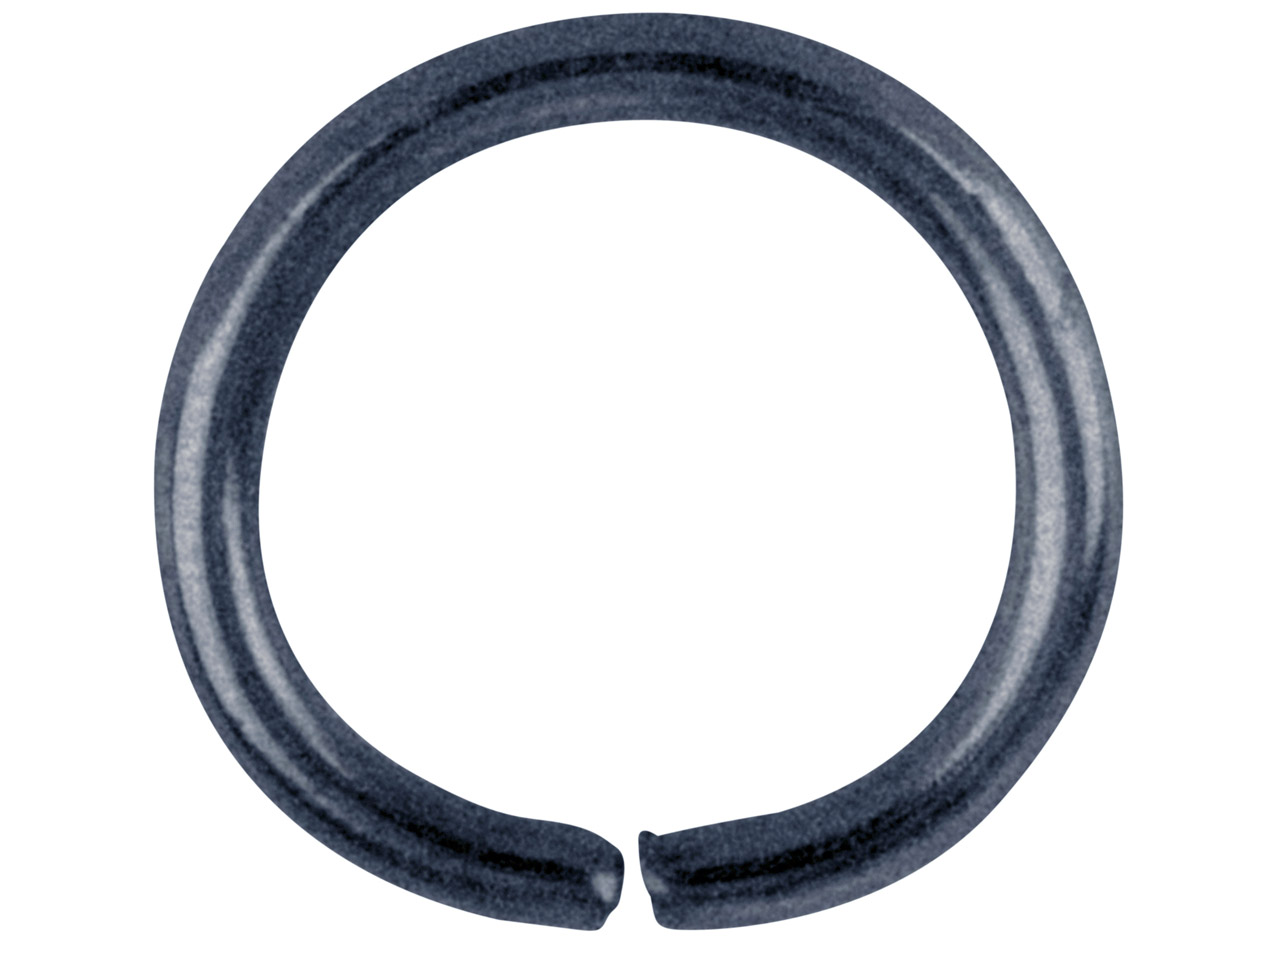 Antique Black Jump Ring Round 10mm Pack of 100,